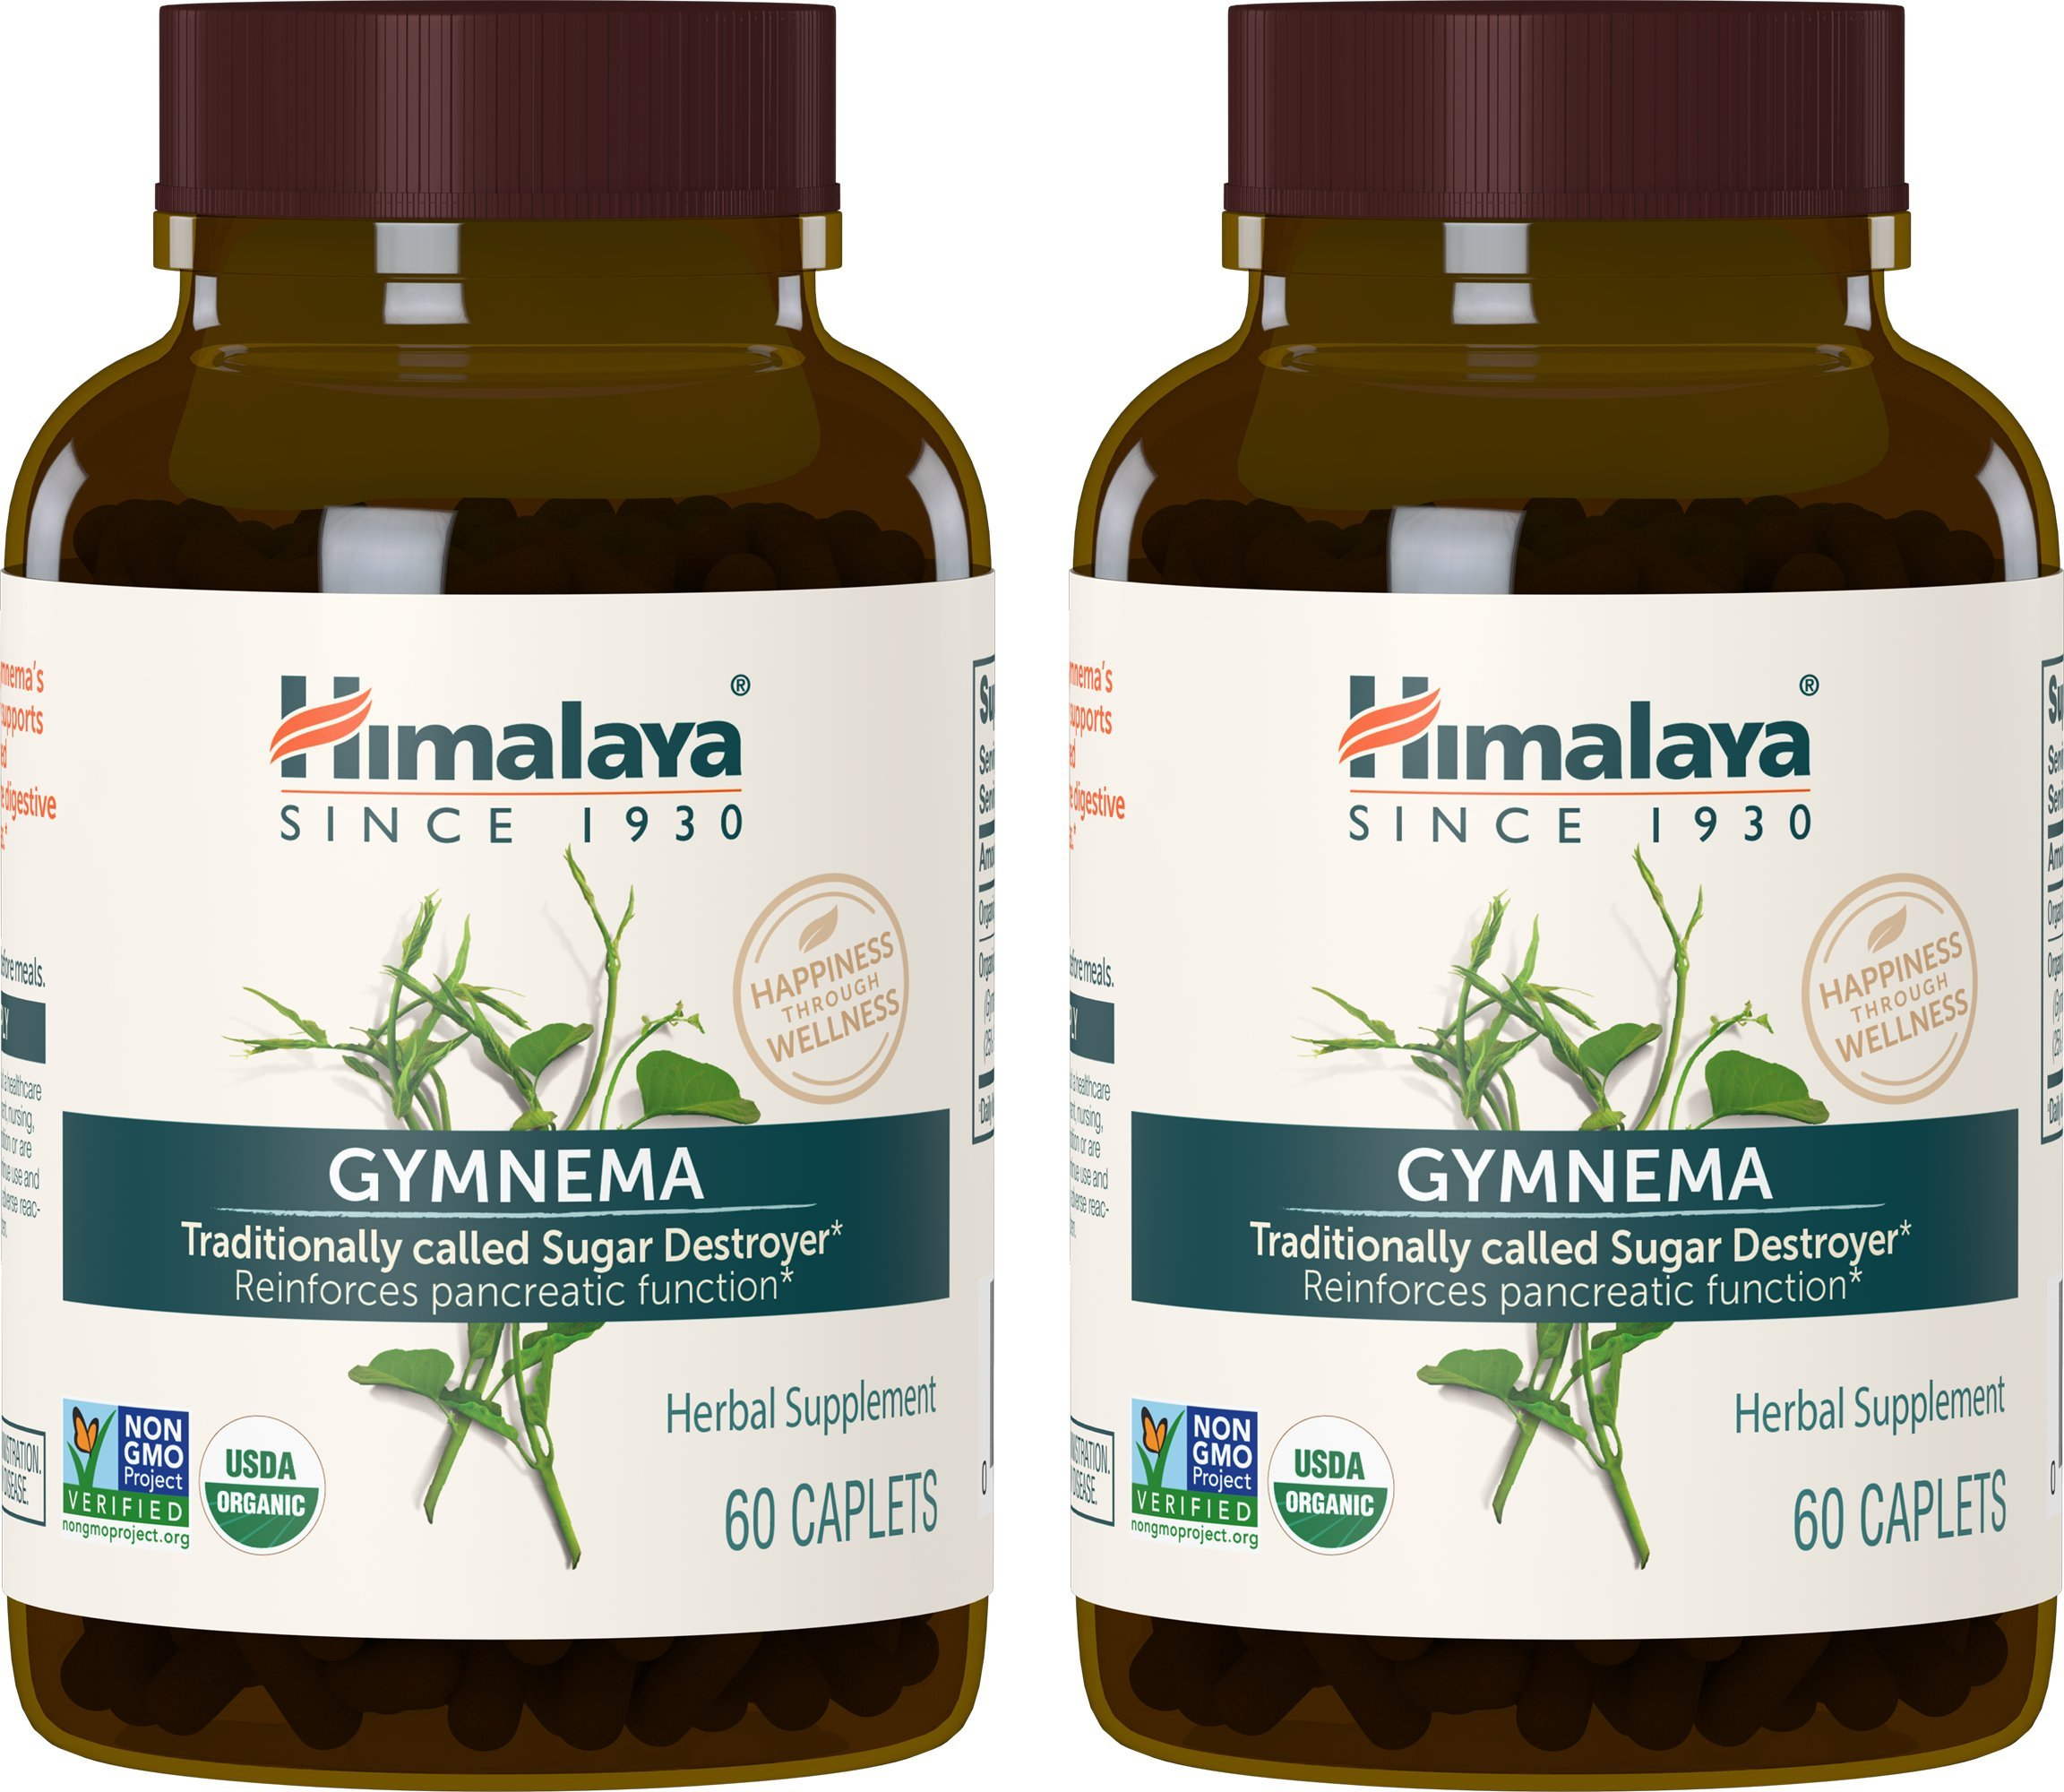 Himalaya Organic Gymnema Sylvestre, Equivalent to 8,254mg of Gymnema Sylvestre Powder, for Blood Sugar Support,  60 Caplets, 2 Month Supply (2 Pack)